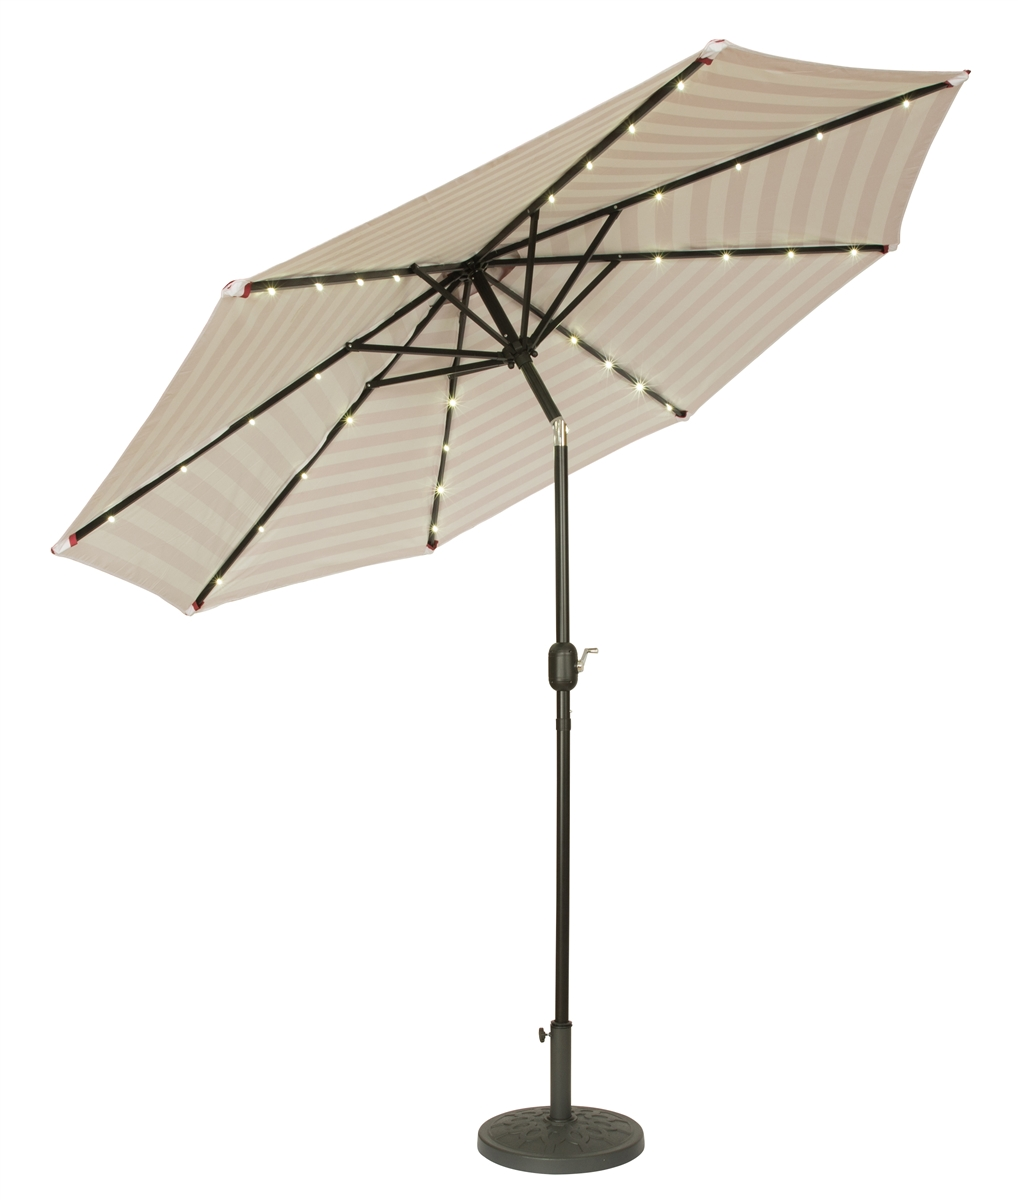 9u0027 Deluxe Solar Powered LED Lighted Patio Umbrella By Trademark Innovations  (Red Striped)